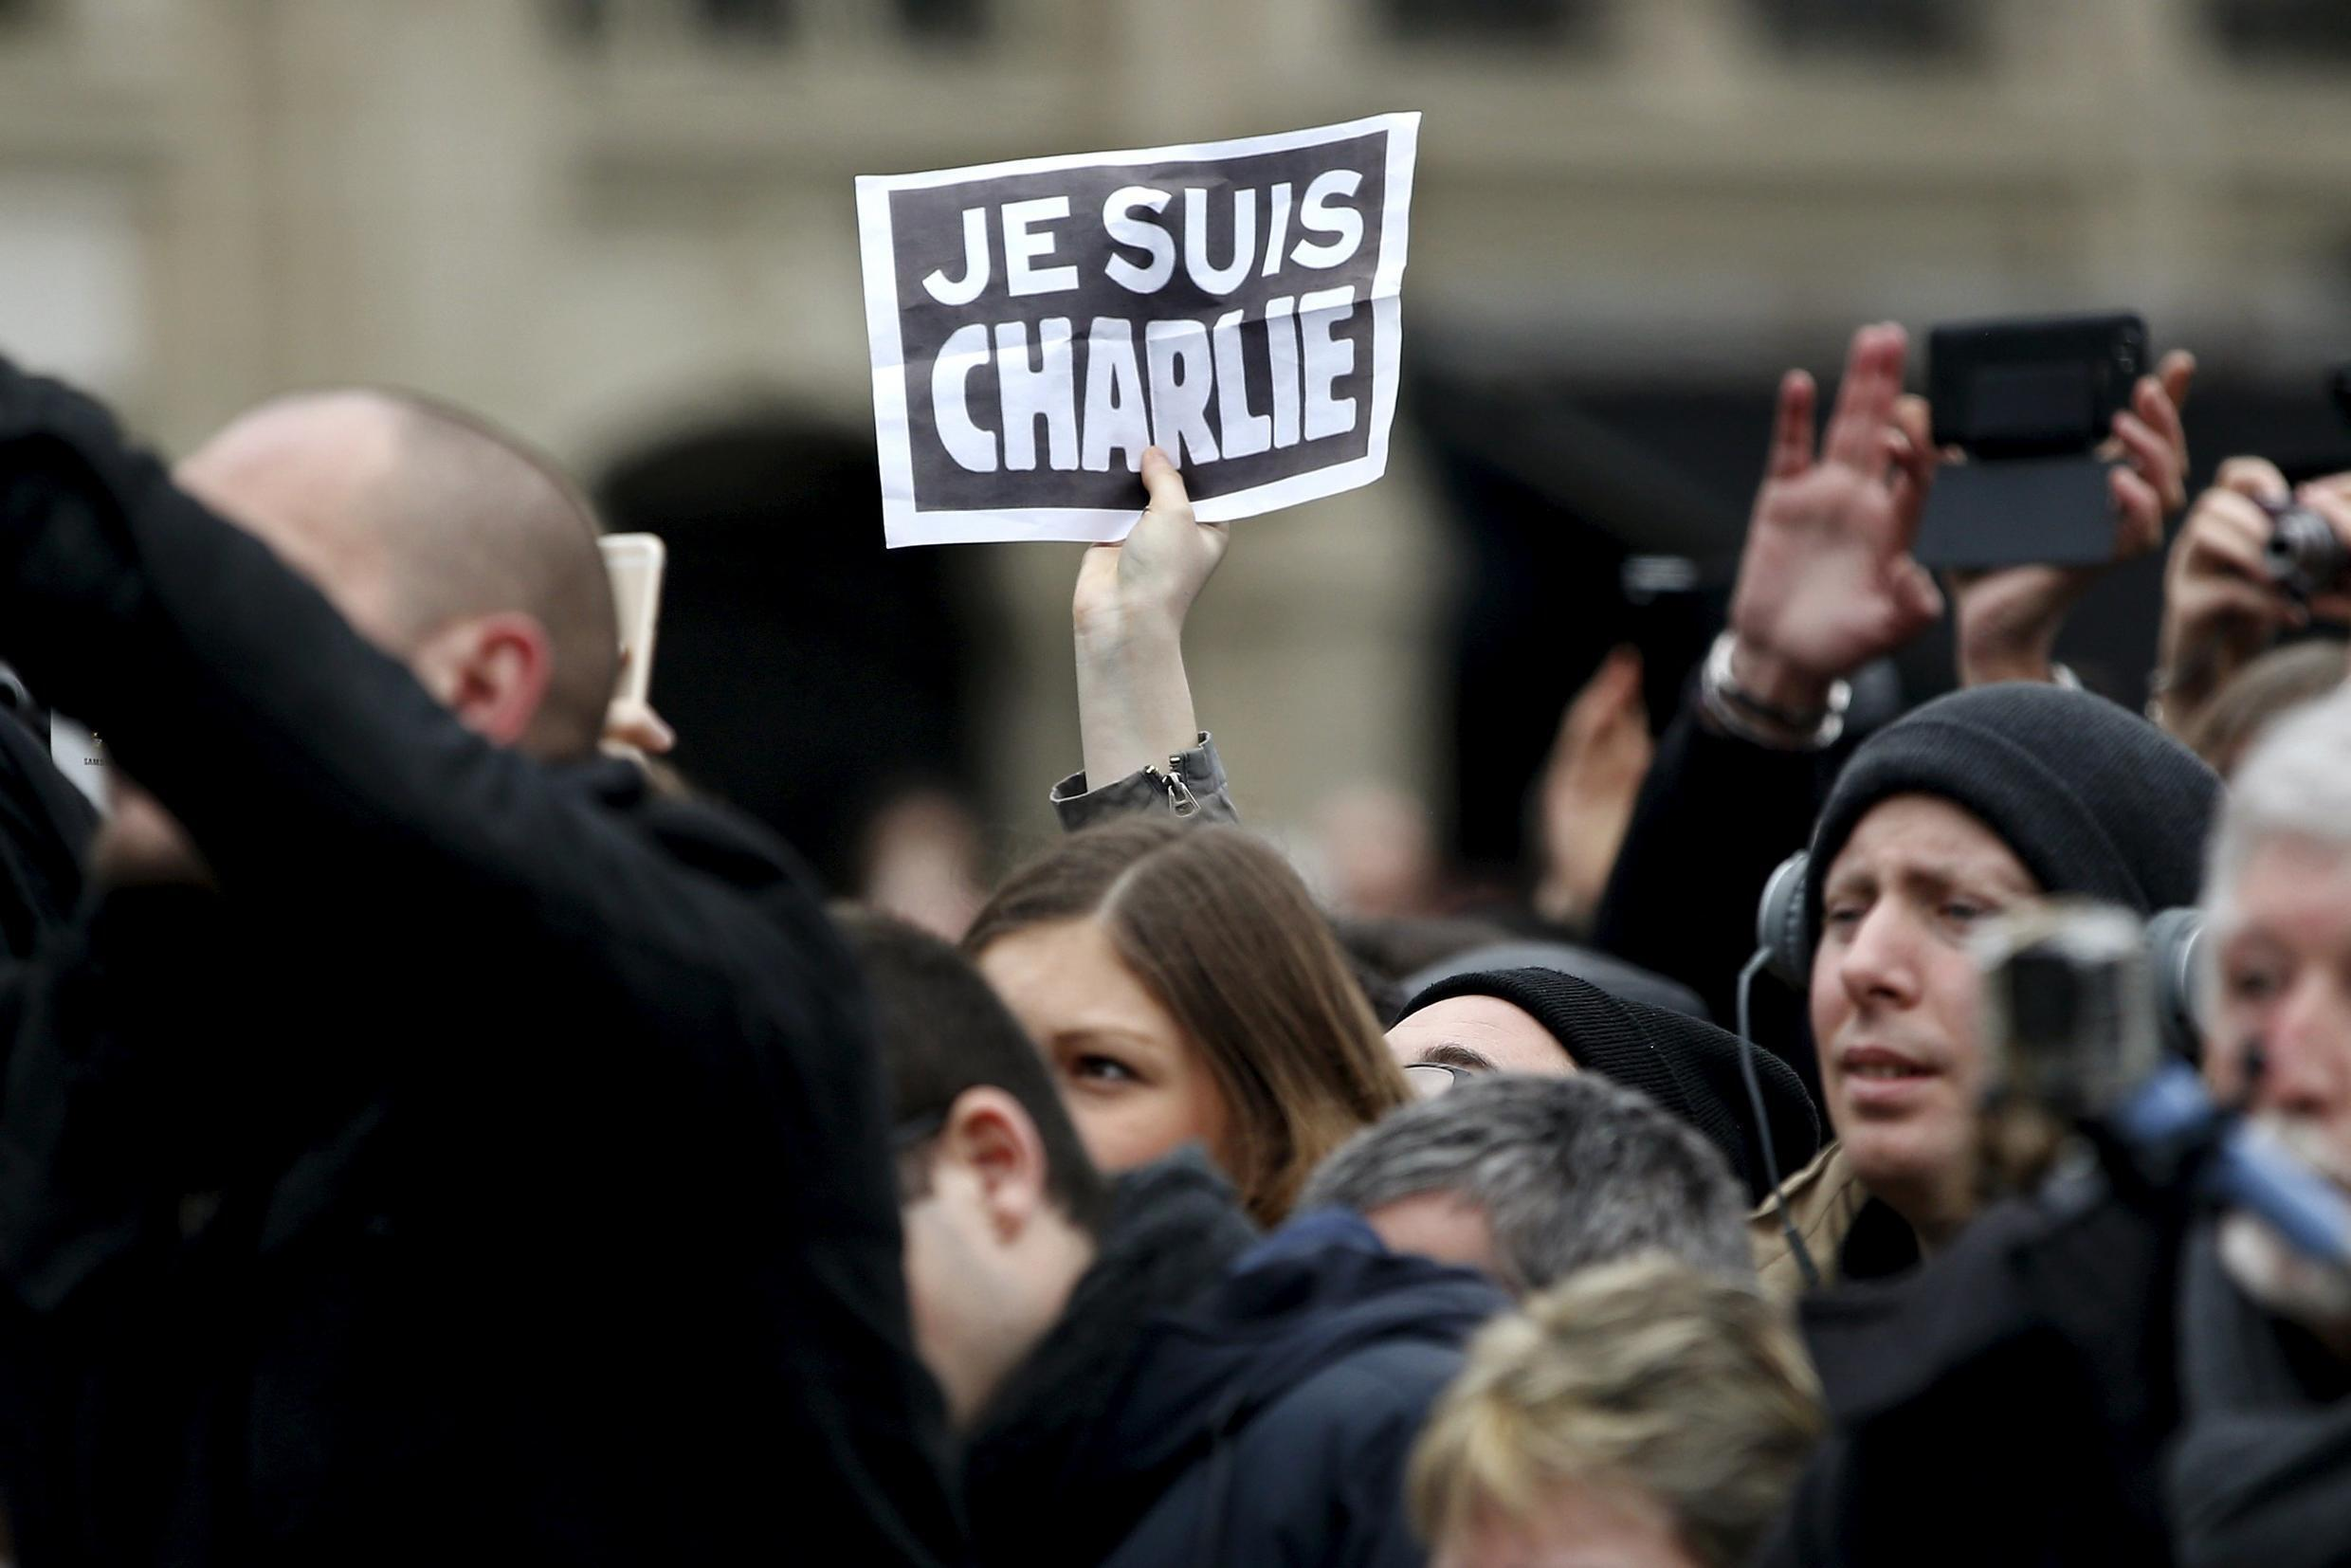 Millions of people rallied in support of press freedom in France following the deadly shootings at the offices of satirical magazine Charlie Hebdo on 7 January 2015.